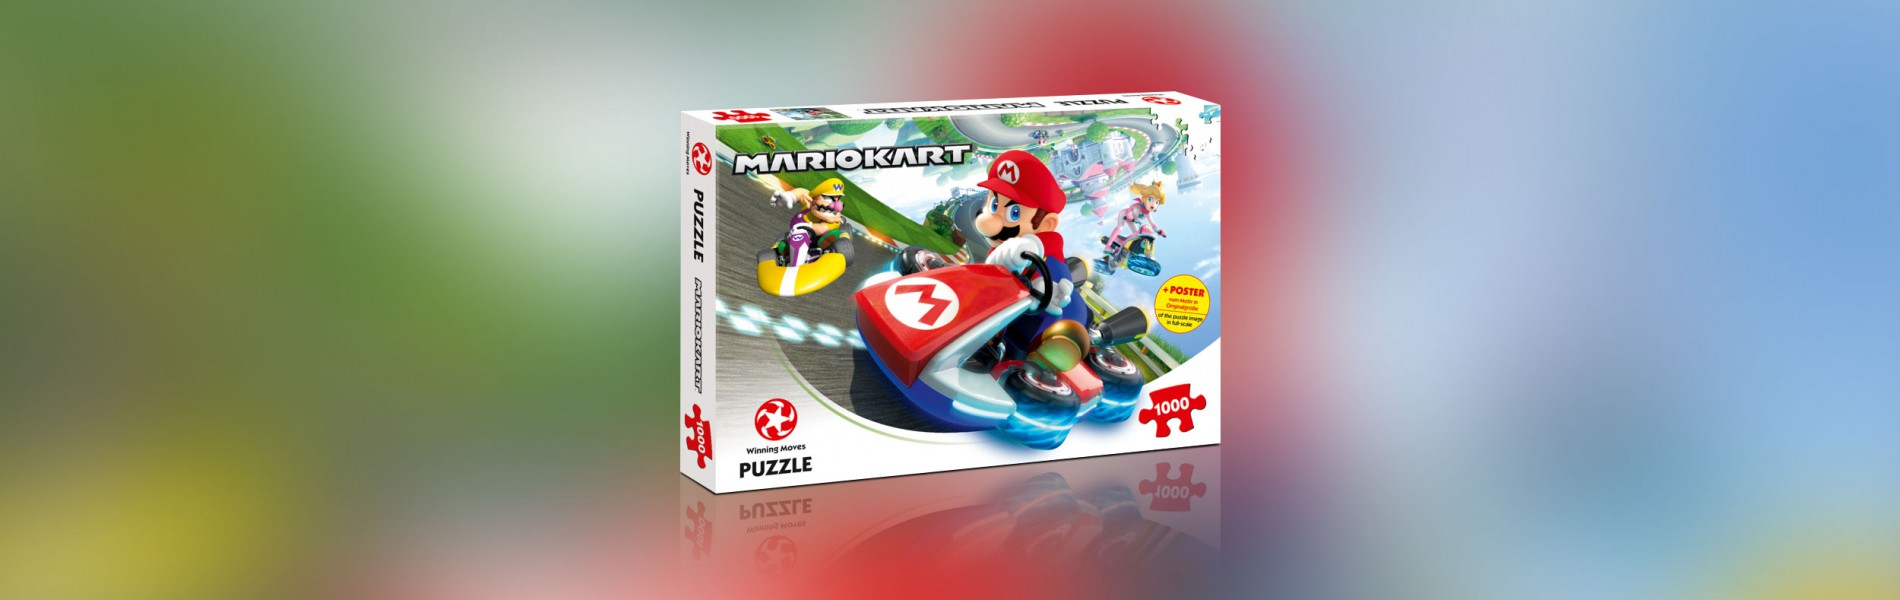 Puzzle Mario Kart – Funracer 1000 Teile